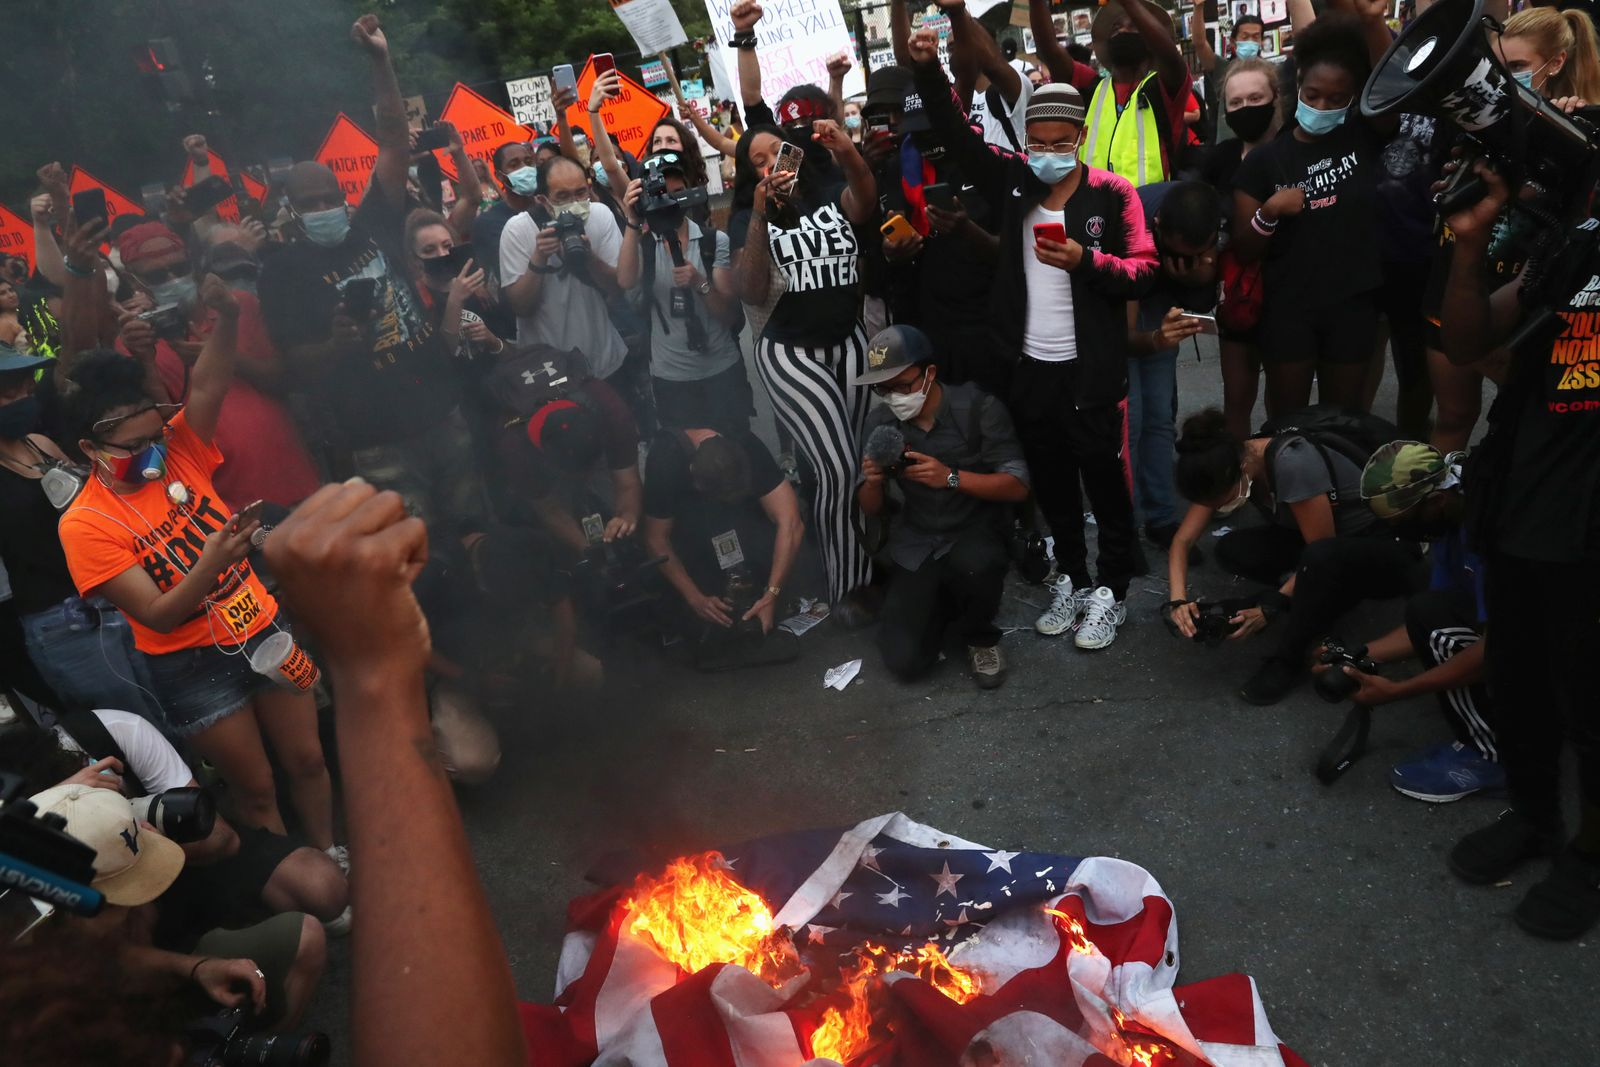 A group of protesters burn an American flag, even as other protesters disagreed with the act, during a protest against racial inequality and police violence near Black Lives Matter Plaza